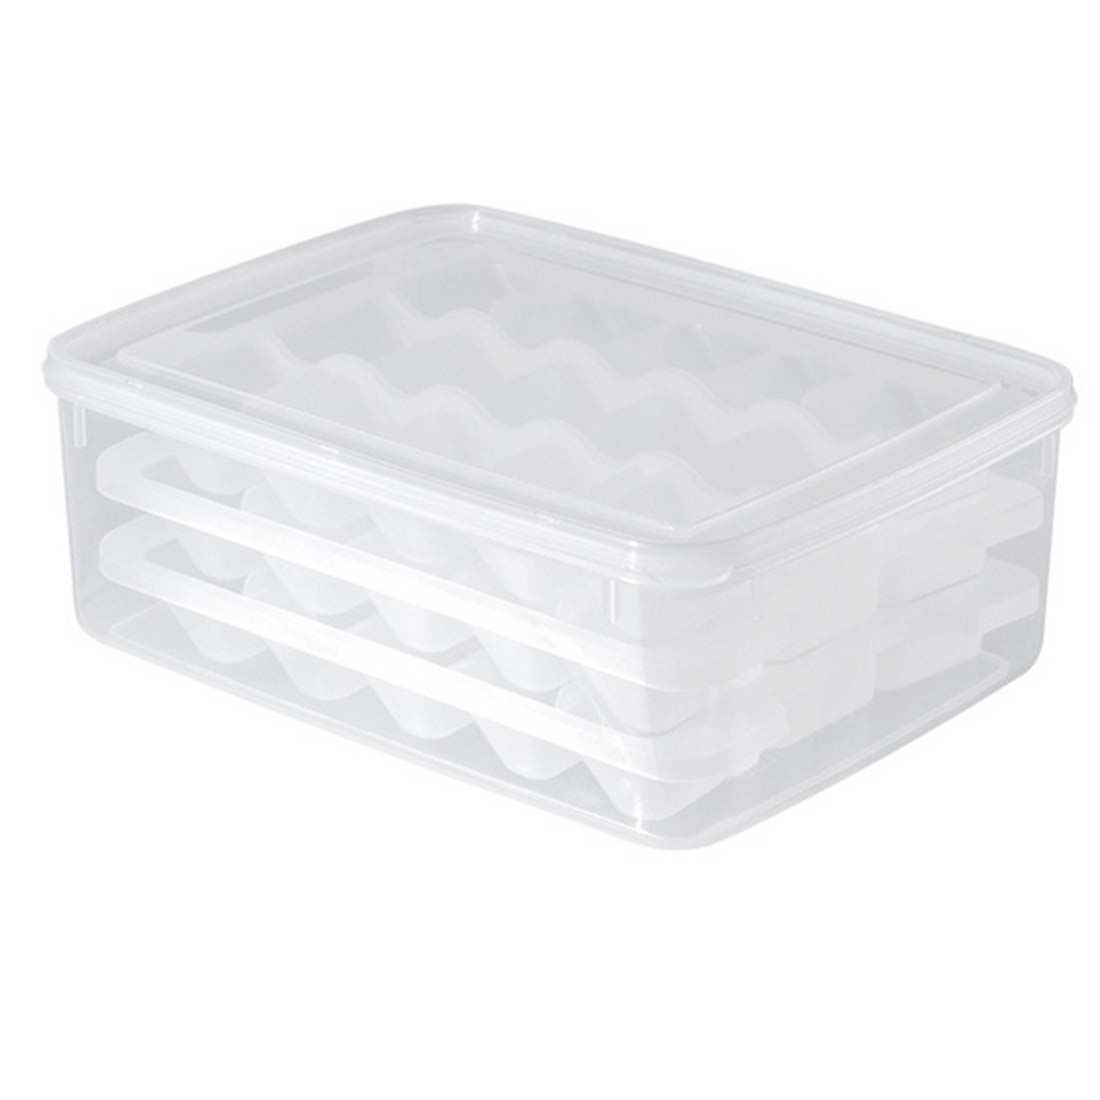 Microwave thawing dumplings tray box, refrigerator fresh frozen dumplings storage box crisper(China (Mainland))